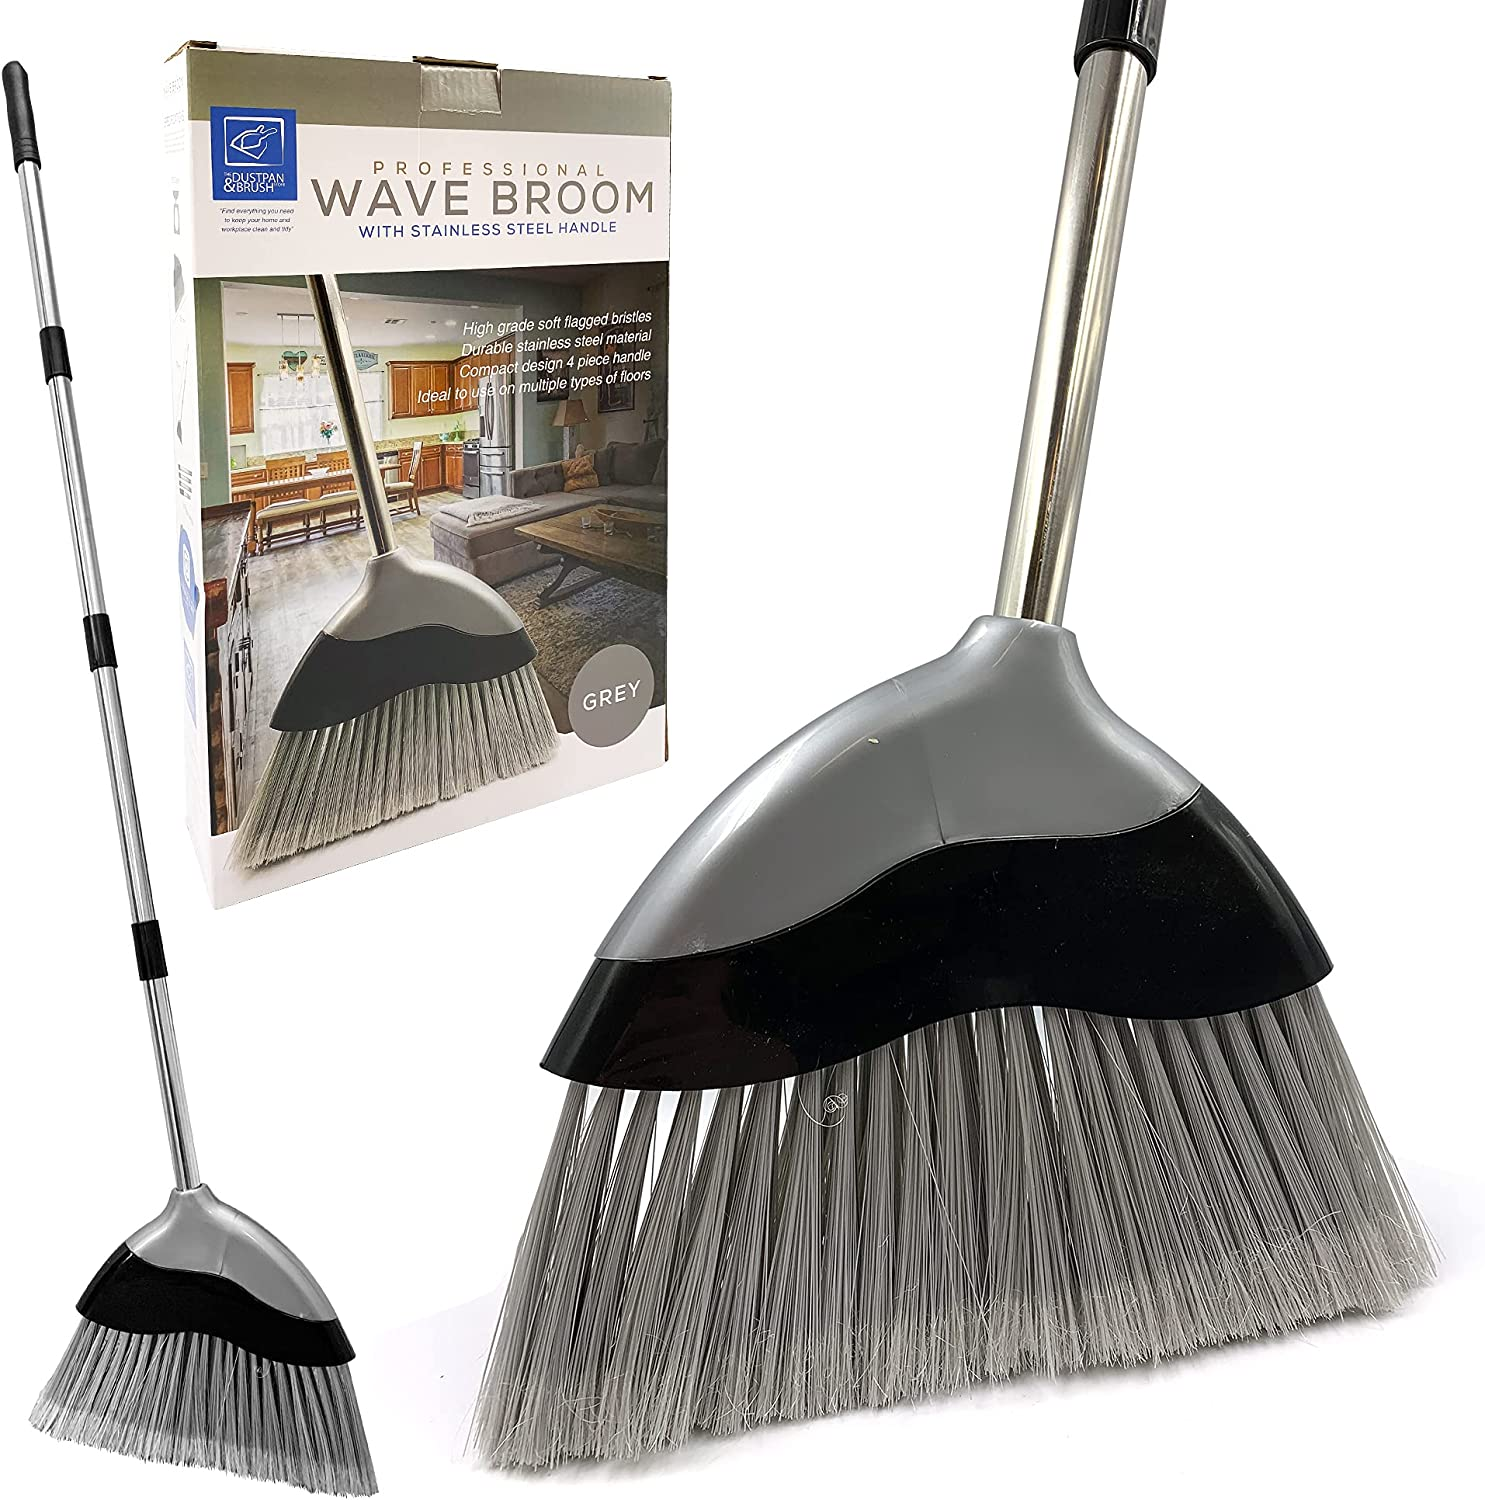 Soft Broom Indoor with 9cm Long Handle – Wave Broom Sweeping Brush with  Angled Soft Bristle Brush and 9 Sections Stainless Steel Handle, Corn Broom  ...